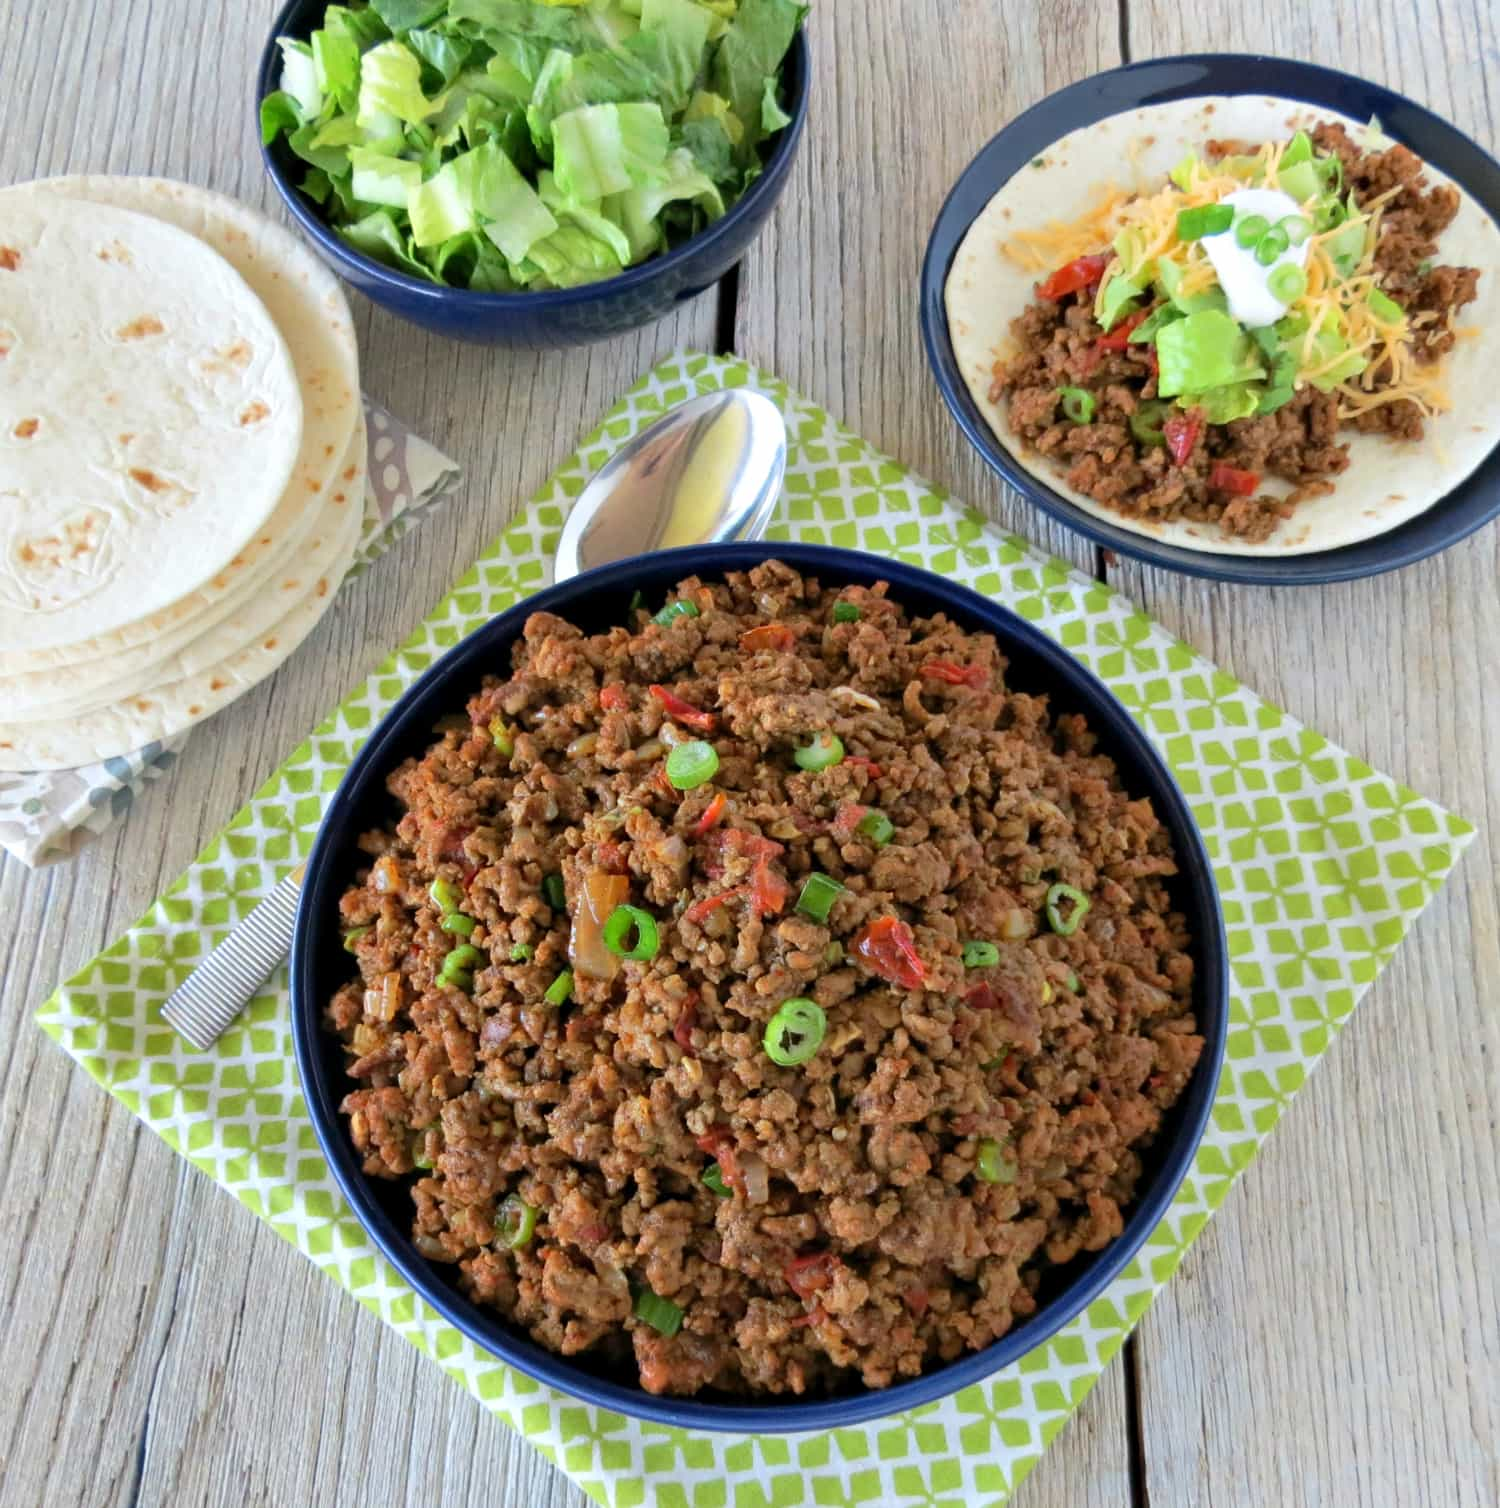 Homemade Seasoned Taco Meat- finished taco meat